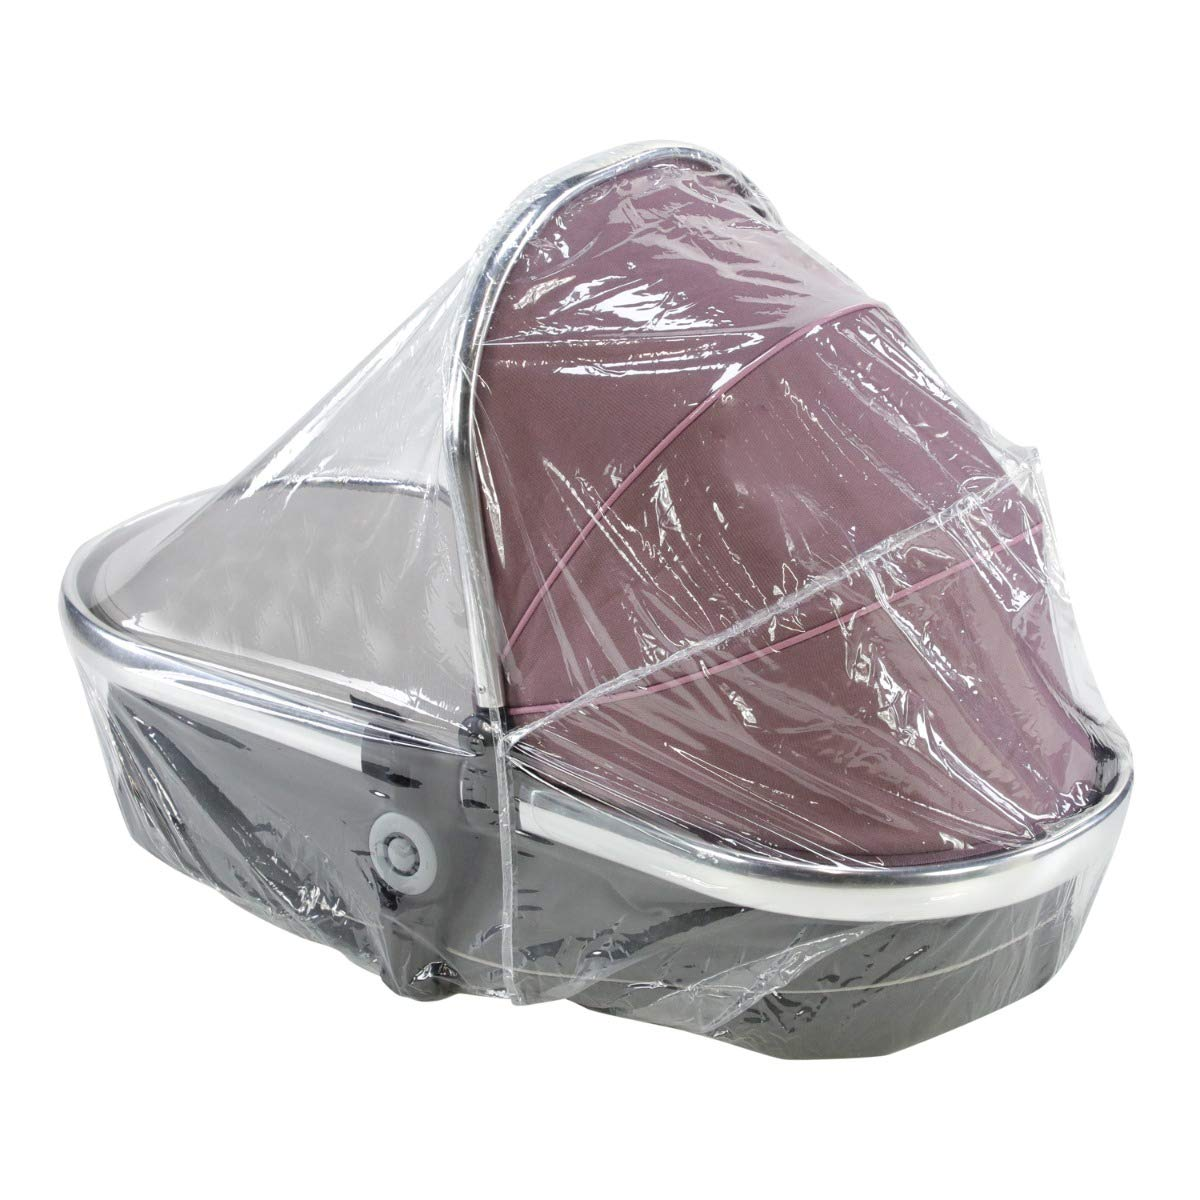 FYLO Carrycot Raincover Compatible with Silver Cross Surf